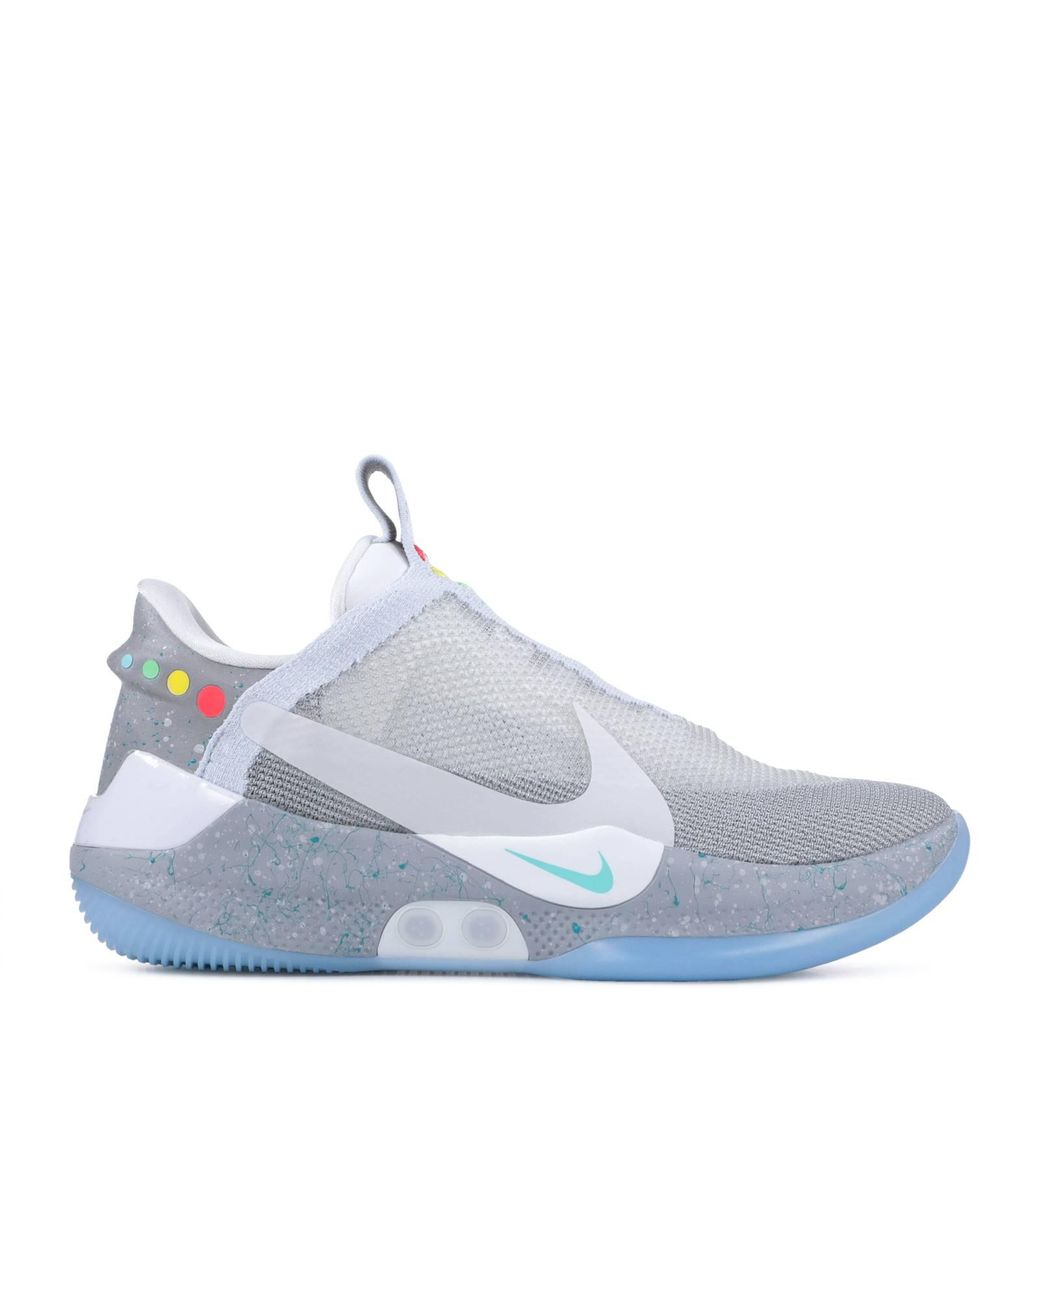 Nike Adapt Bb 'mag' Shoes - Size 9 in